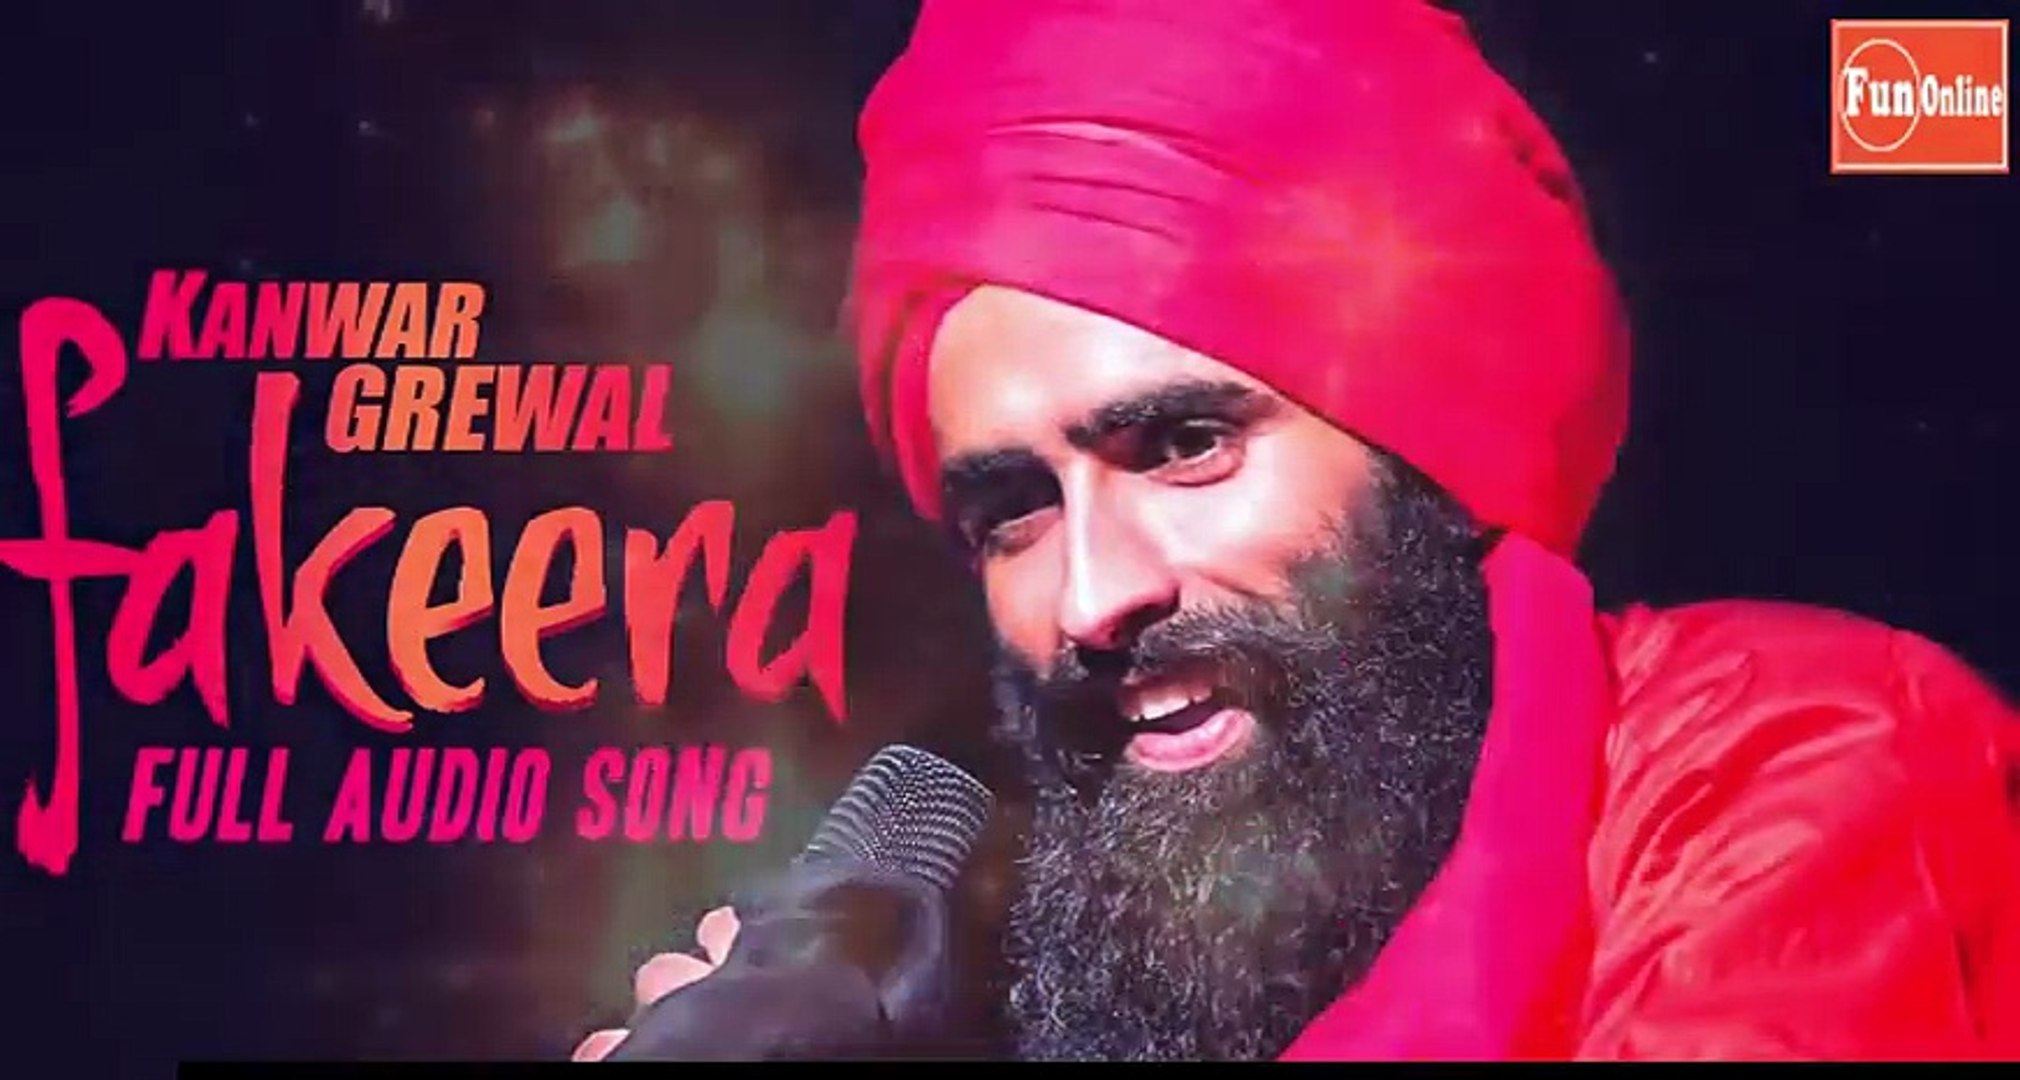 Fakeera ( Full Audio Song ) | Kanwar Grewal | Punjabi Song  CollectionFun-online